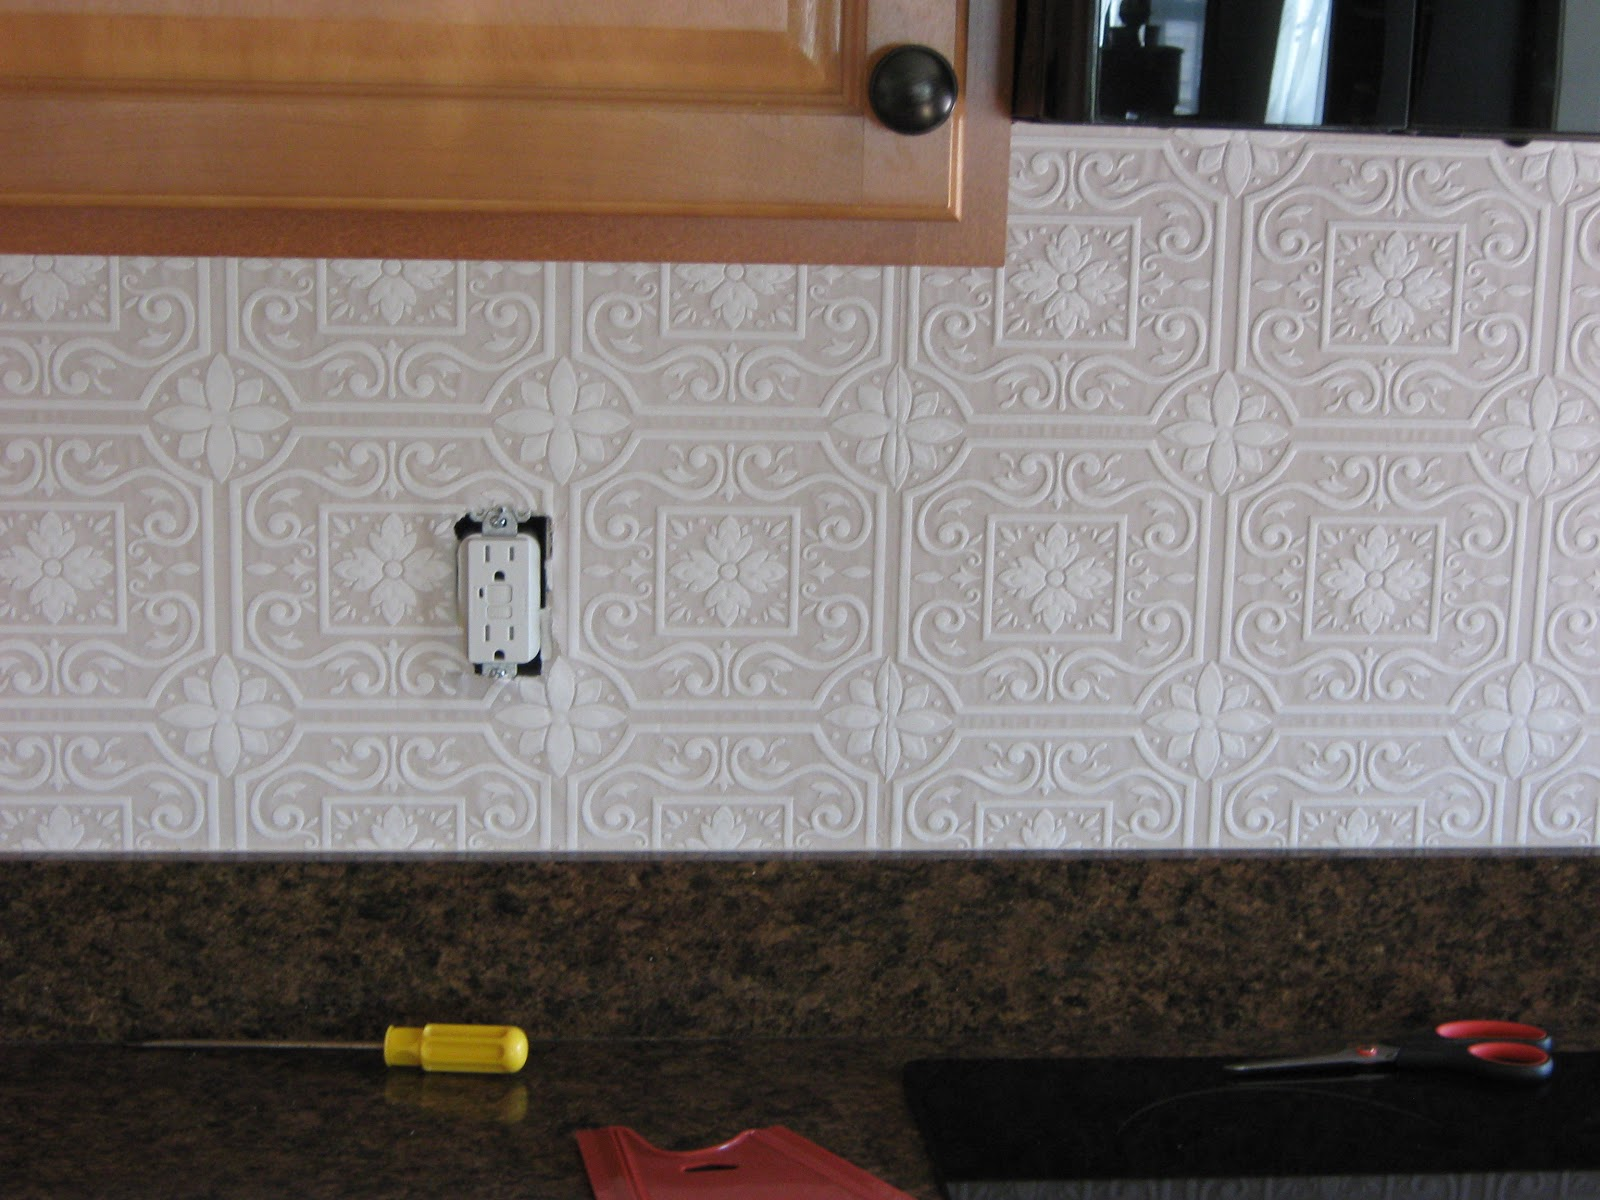 Kitchen Wallpaper Backsplash 8 Decoration Idea - EnhancedHomes.org on kitchen counter ideas, kitchen murals ideas, kitchen photography ideas, kitchen electrical ideas, country kitchen ideas, kitchen bathroom ideas, small kitchen remodeling ideas, kitchen background ideas, kitchen newspaper ideas, kitchen cutouts ideas, kitchen banquette seating ideas, kitchen tools ideas, simple rustic kitchen ideas, kitchen rugs ideas, kitchen embroidery ideas, kitchen design, contemporary kitchen ideas, kitchen wood ideas, kitchen signs ideas, pinterest kitchen ideas,